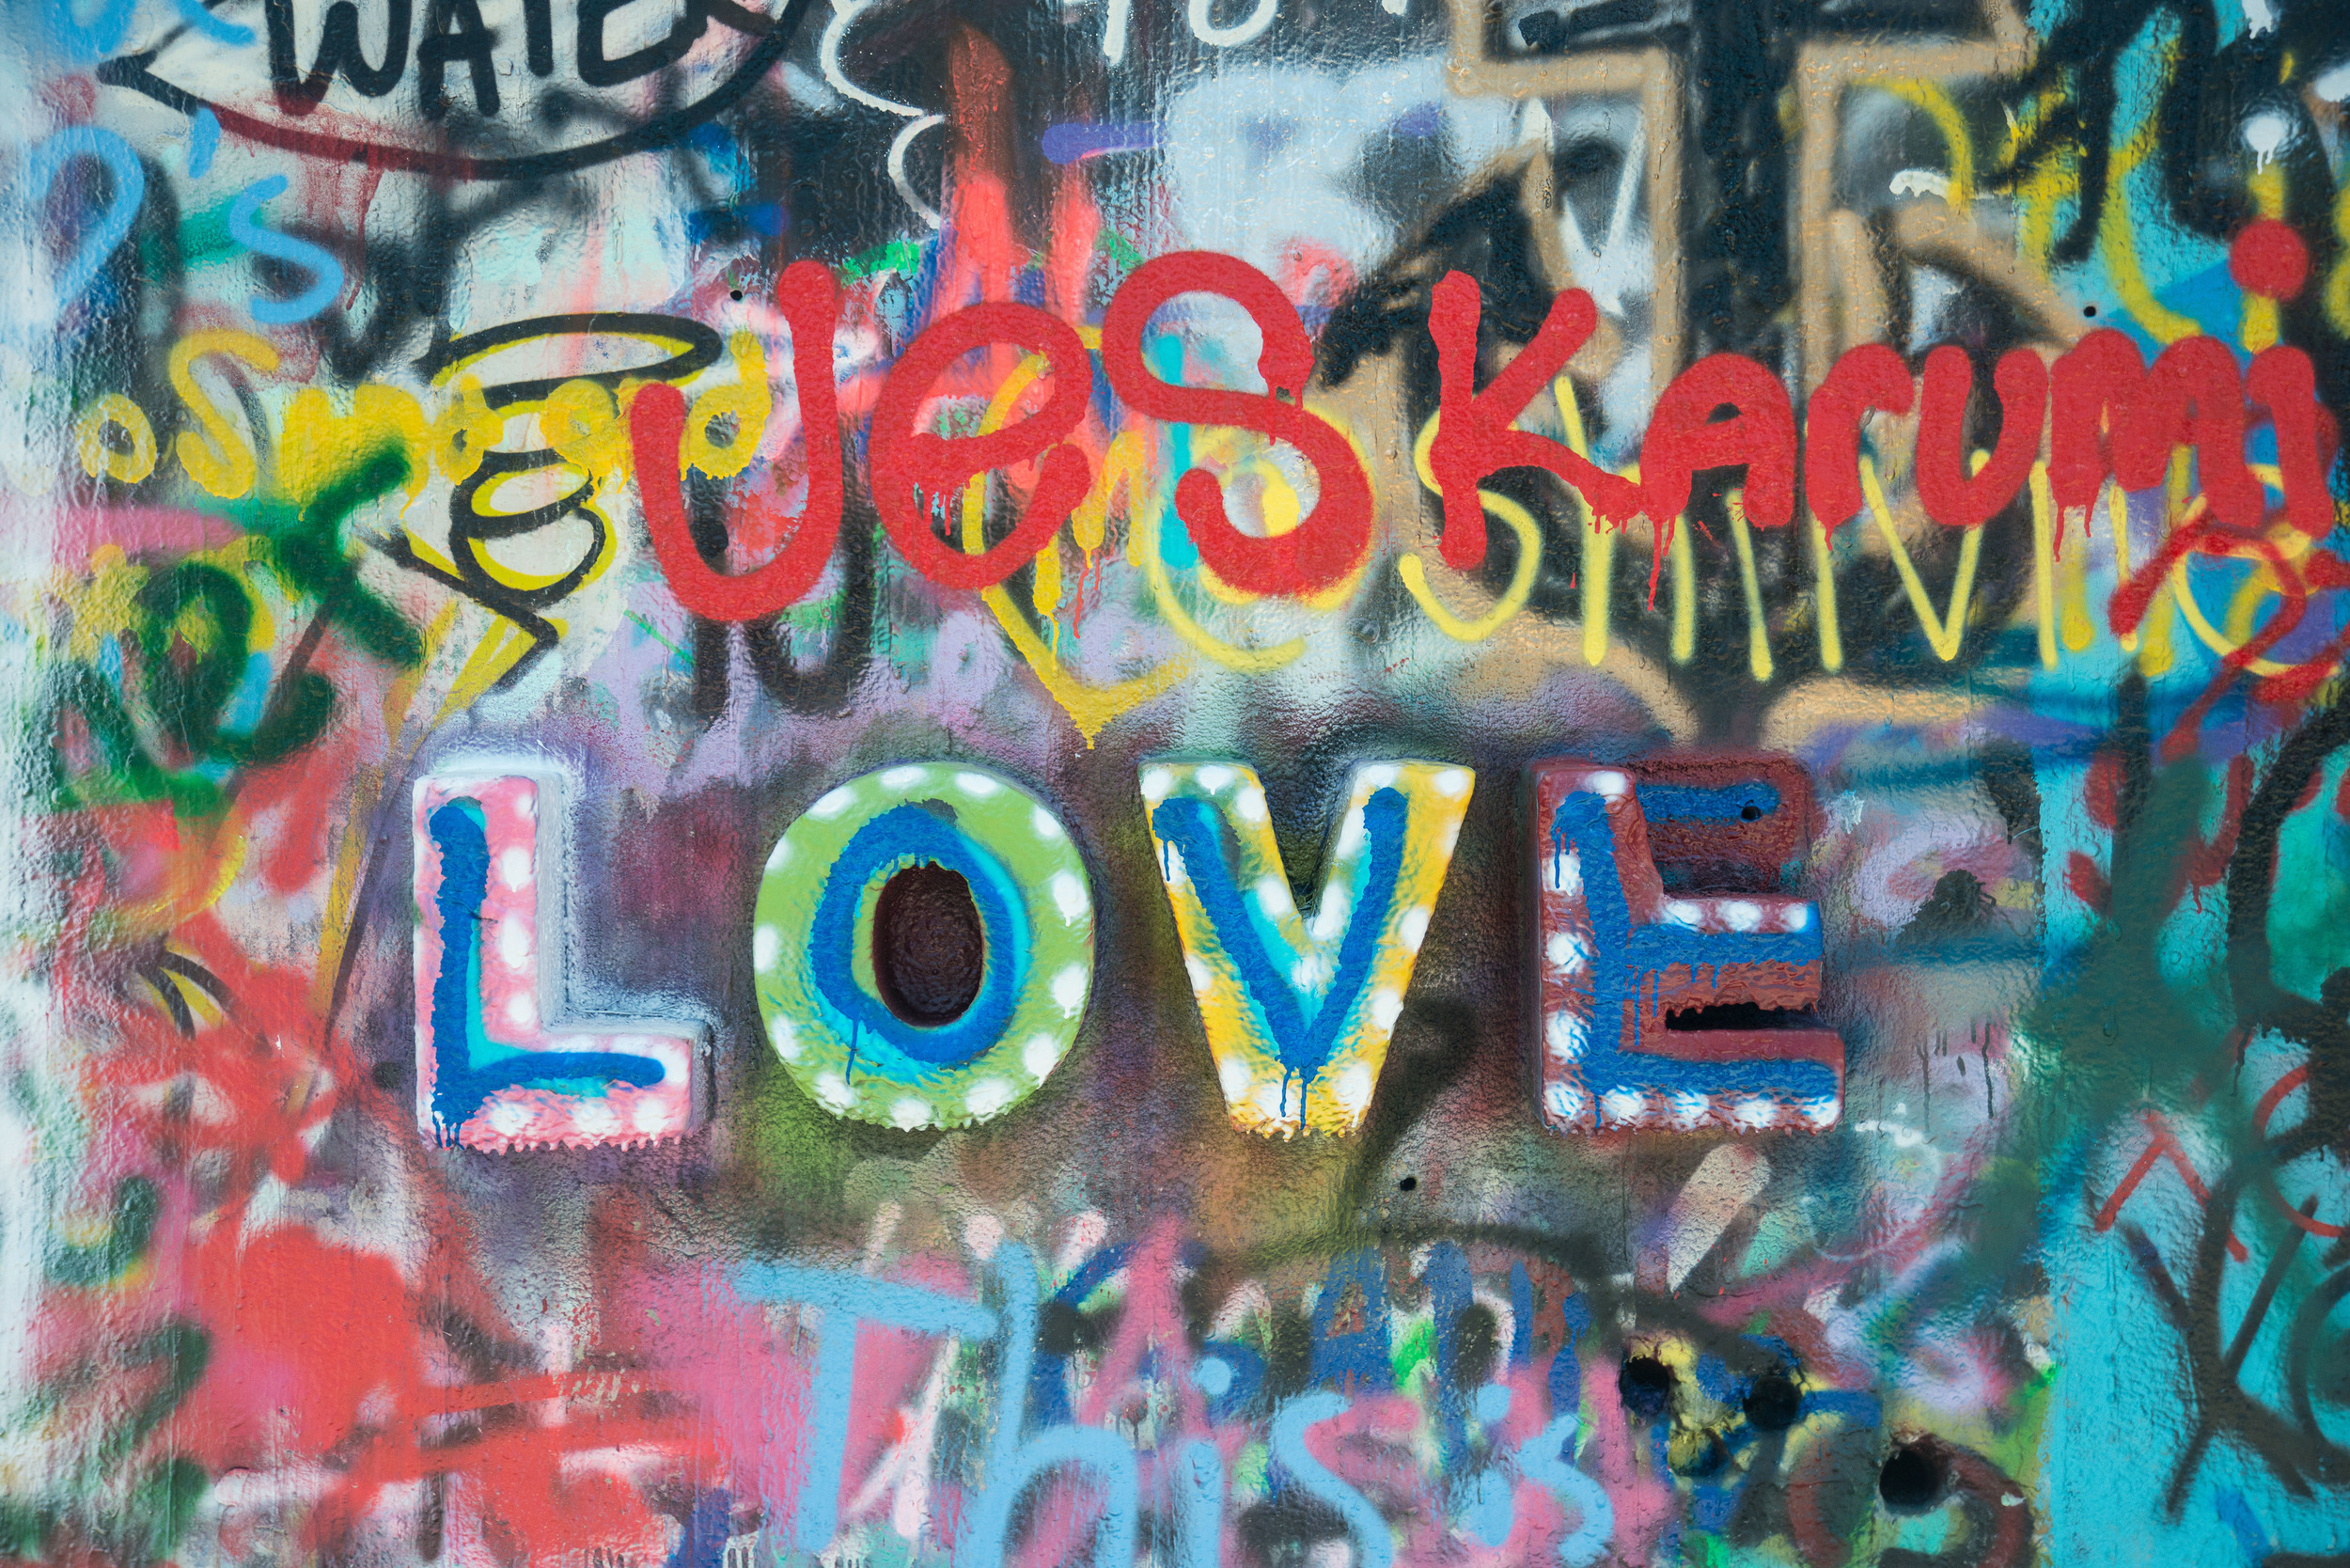 Love. From the graffiti wall in Austin, TX.